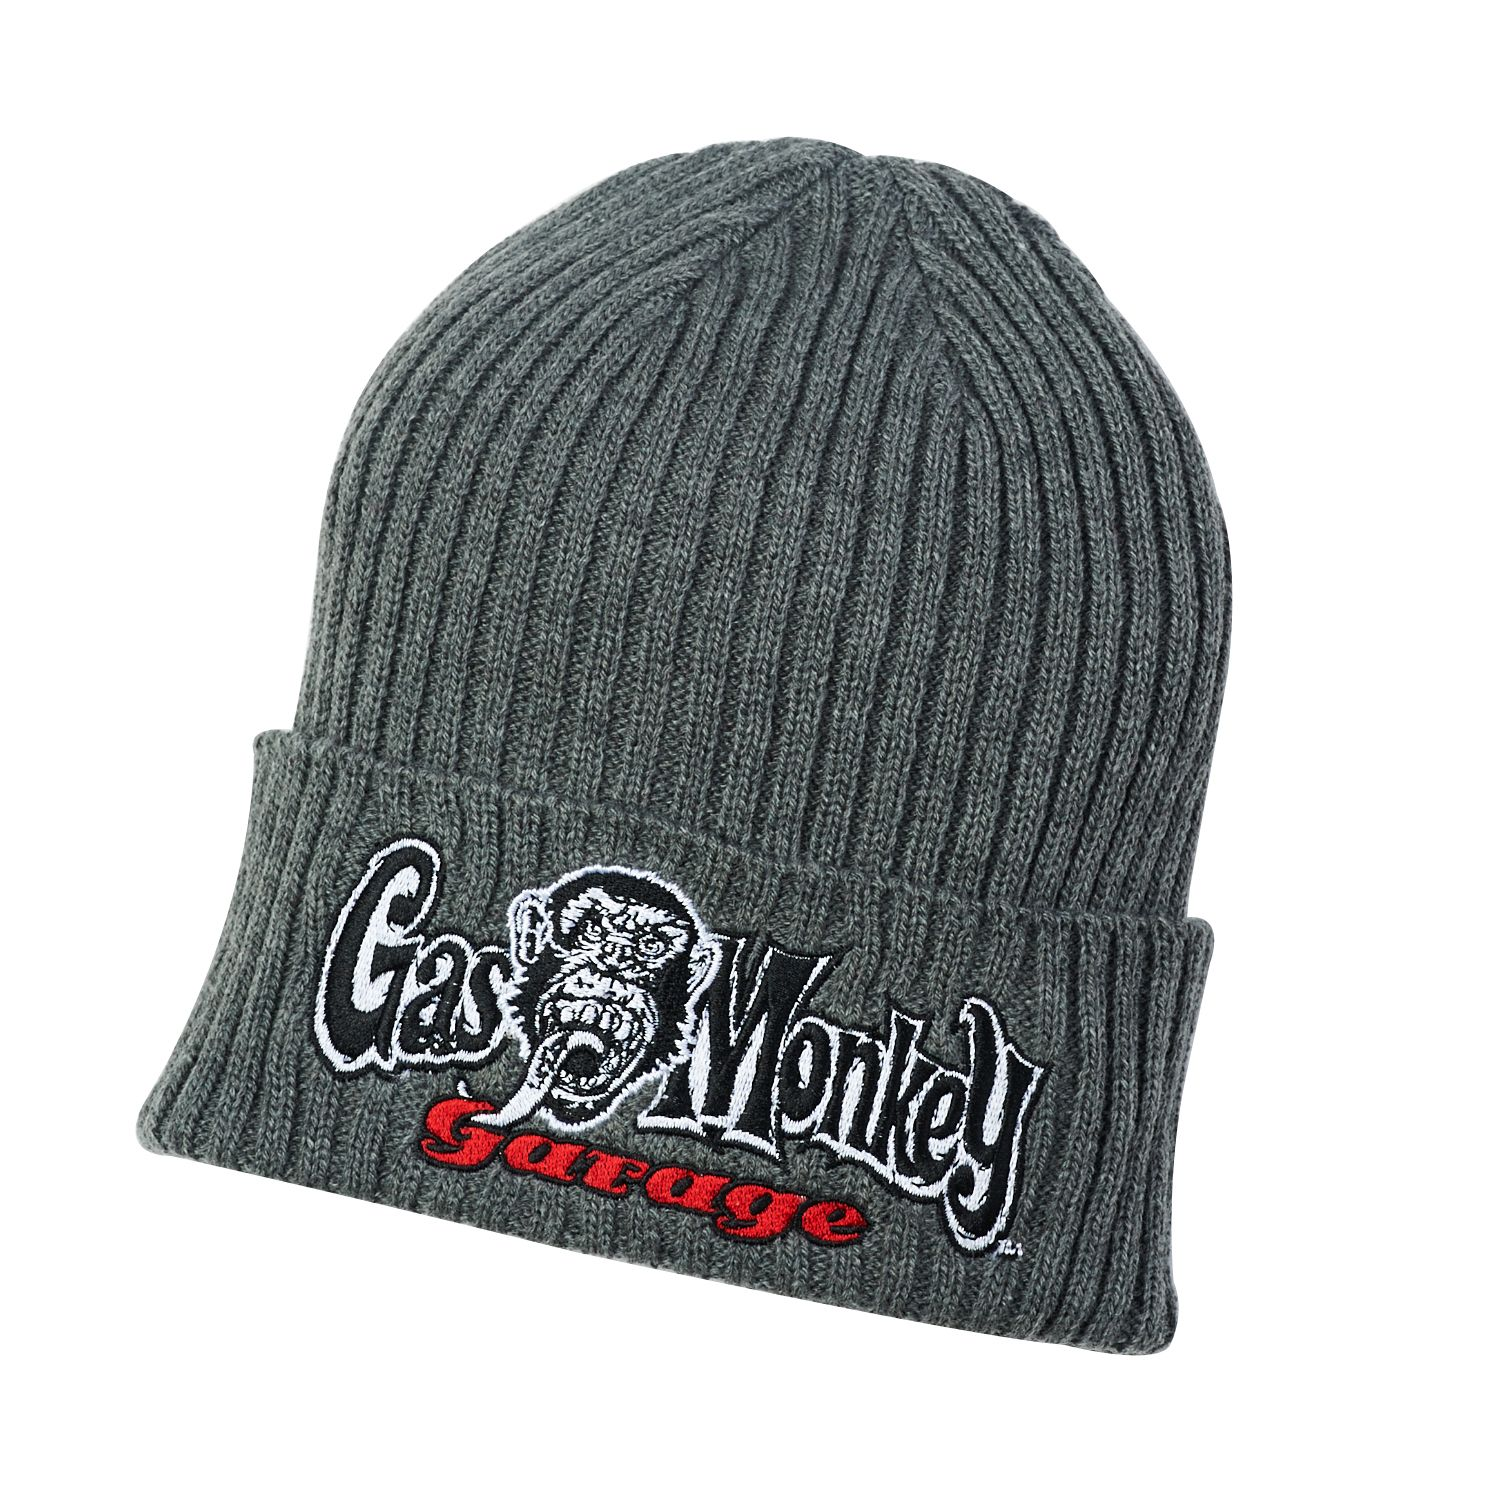 1bbd17569c8 Gas Monkey Garage Knit Beanie by Concept One Accessories  FastnLoud ...